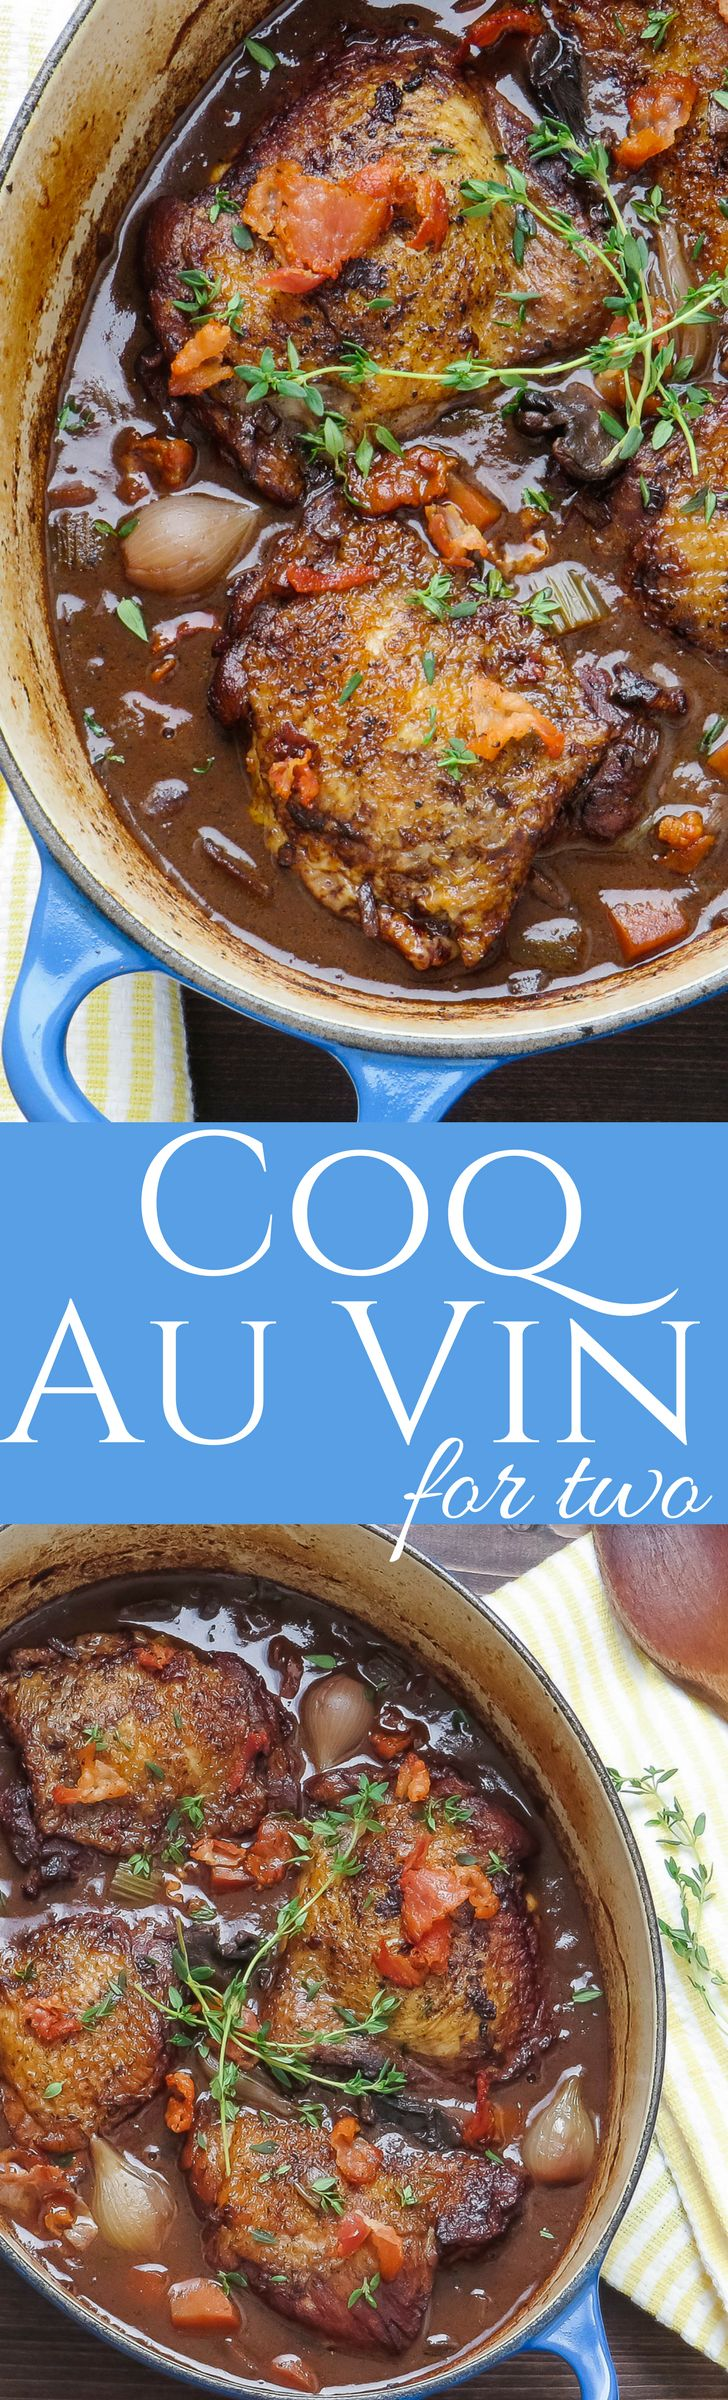 91 best romantic recipes for two images on pinterest rezepte coq au vin for two romantic dinner forumfinder Gallery